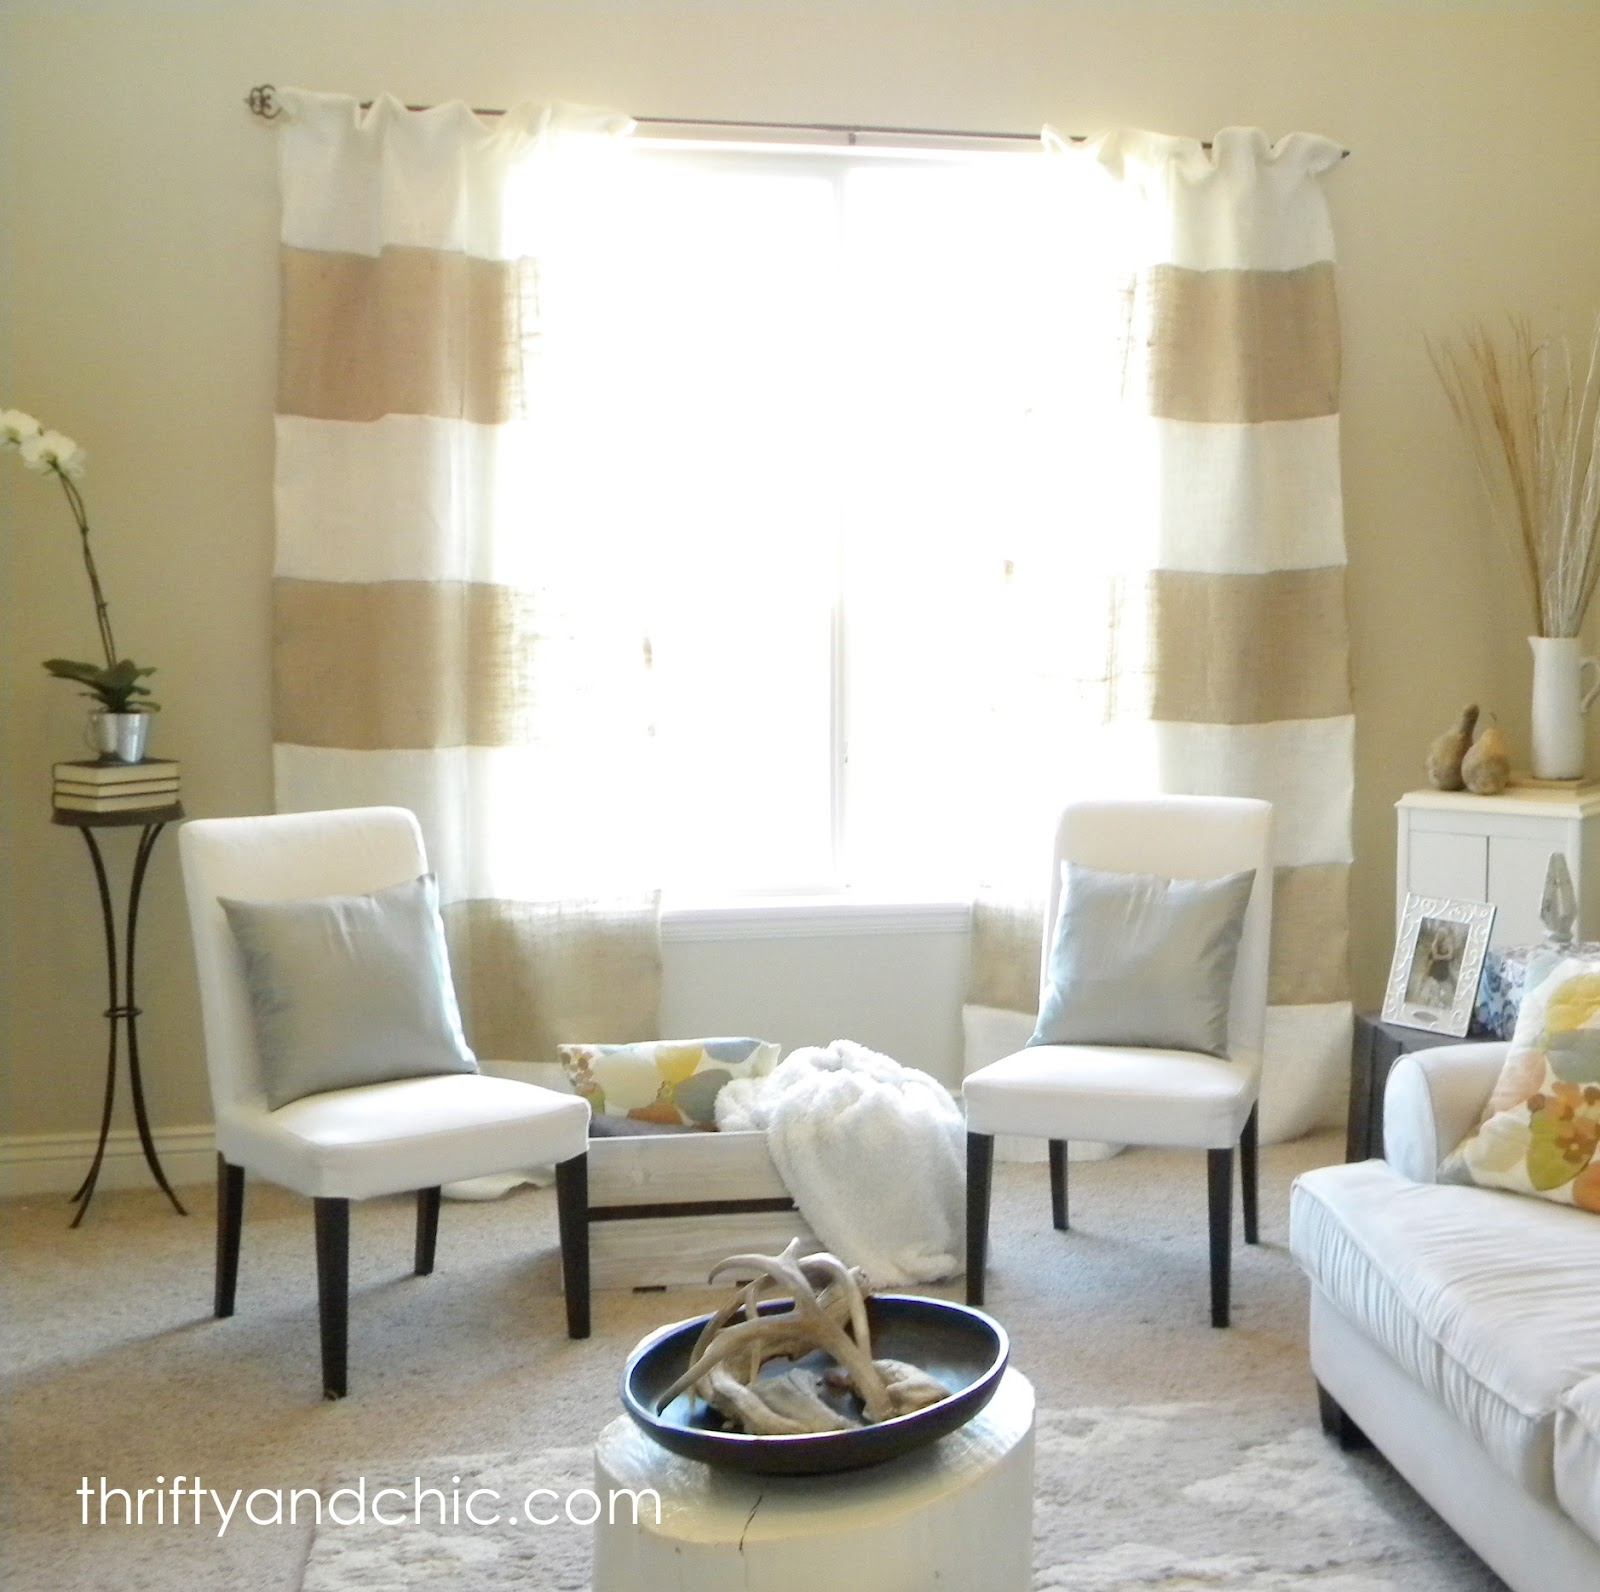 Thrifty And Chic Diy Projects And Home Decor With Burlap Curtains (Image 25 of 25)